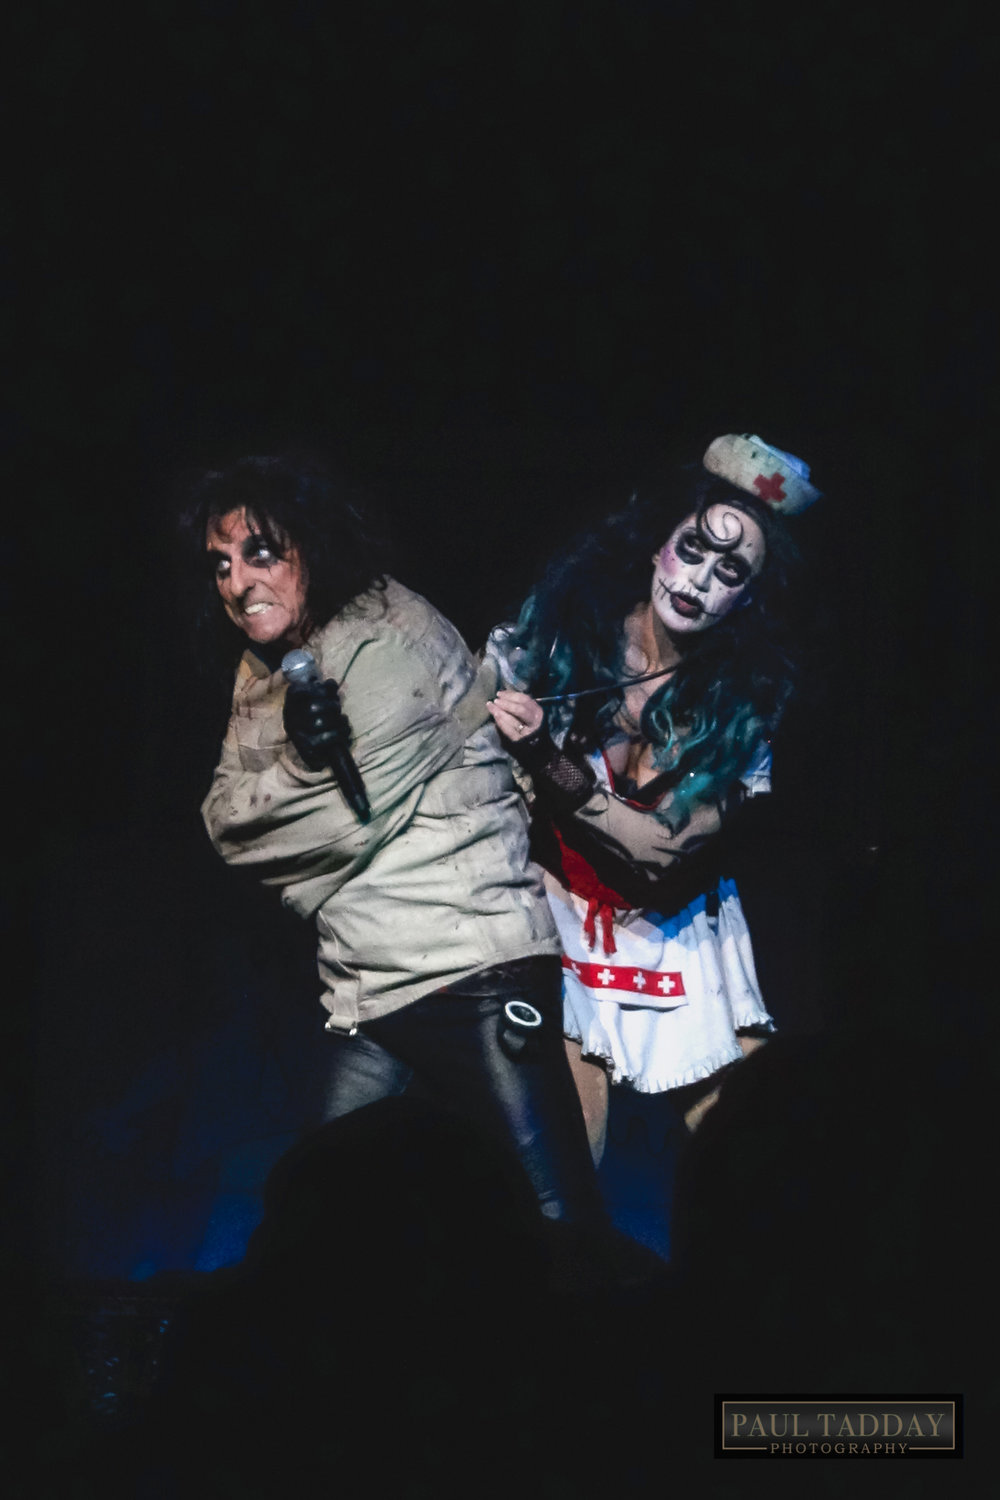 alice cooper - melbourne - paul tadday photography - 201017 - 47.jpg